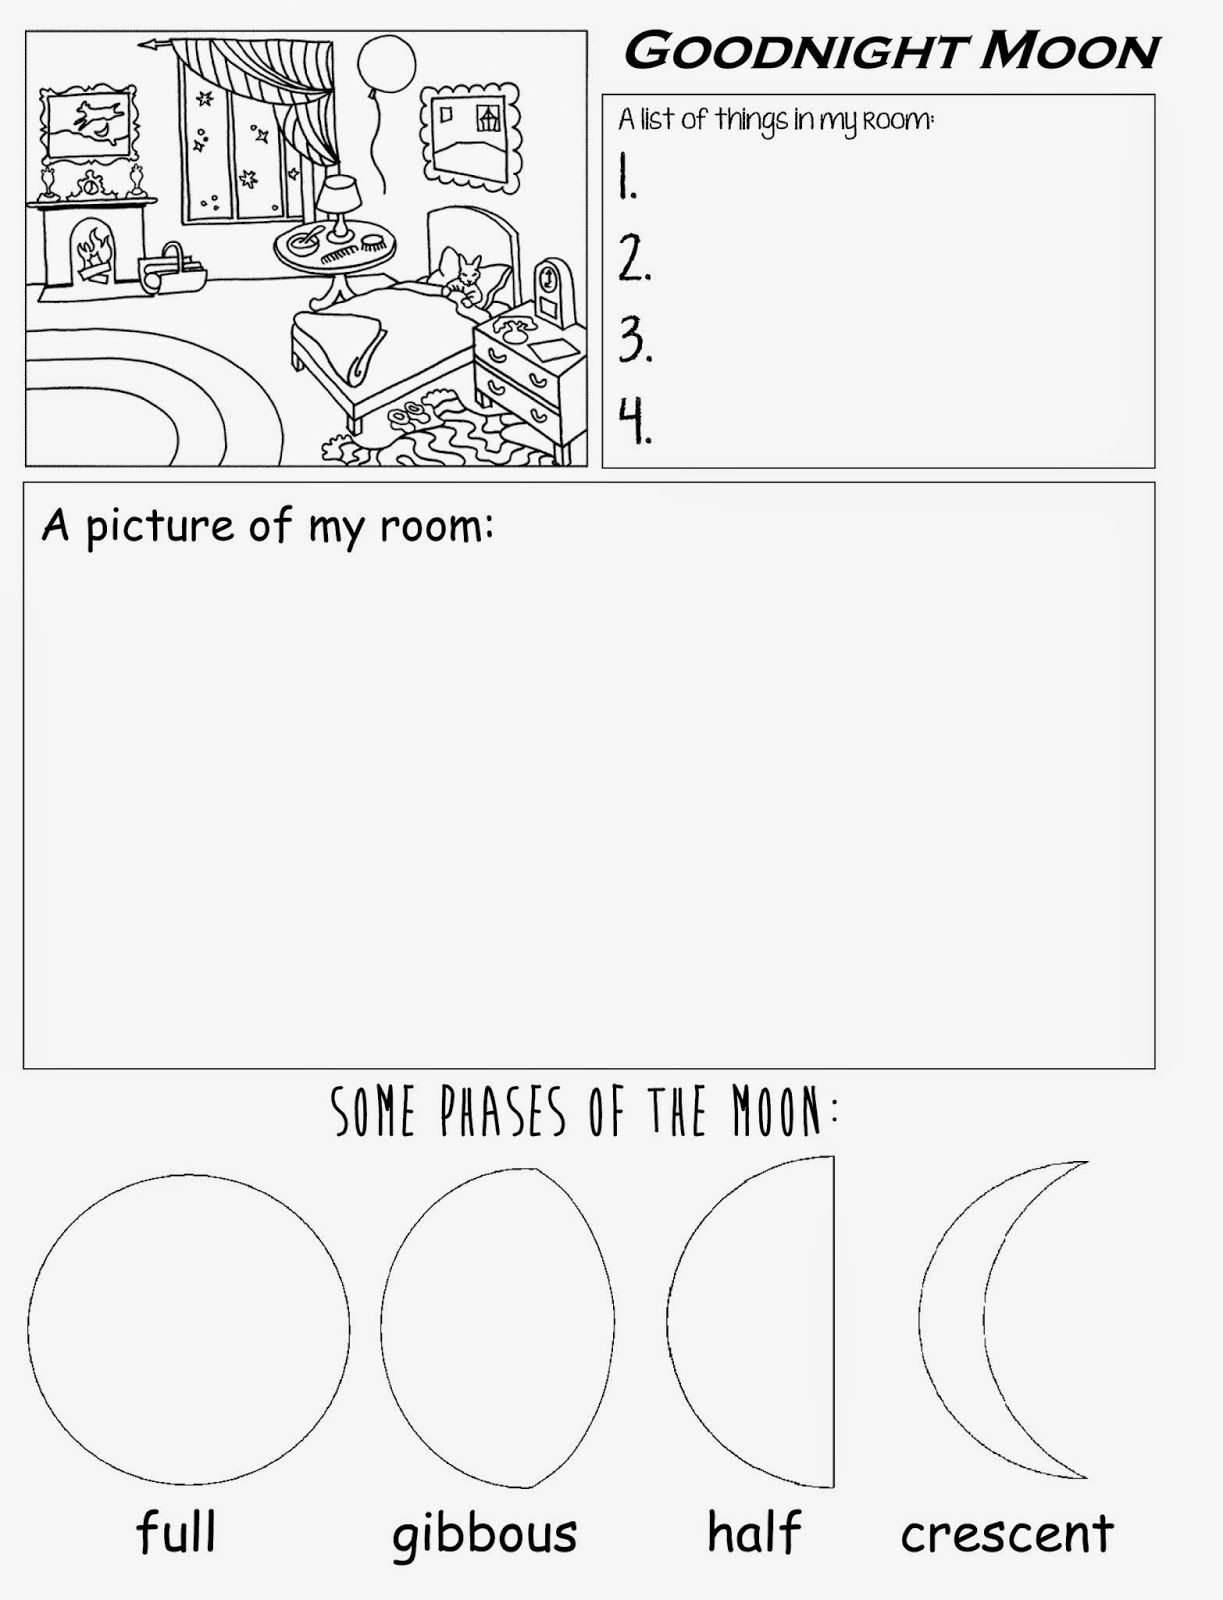 Goodnight Moon Free Printable Worksheet For Preschool Kindergarten | Home Worksheets Printables